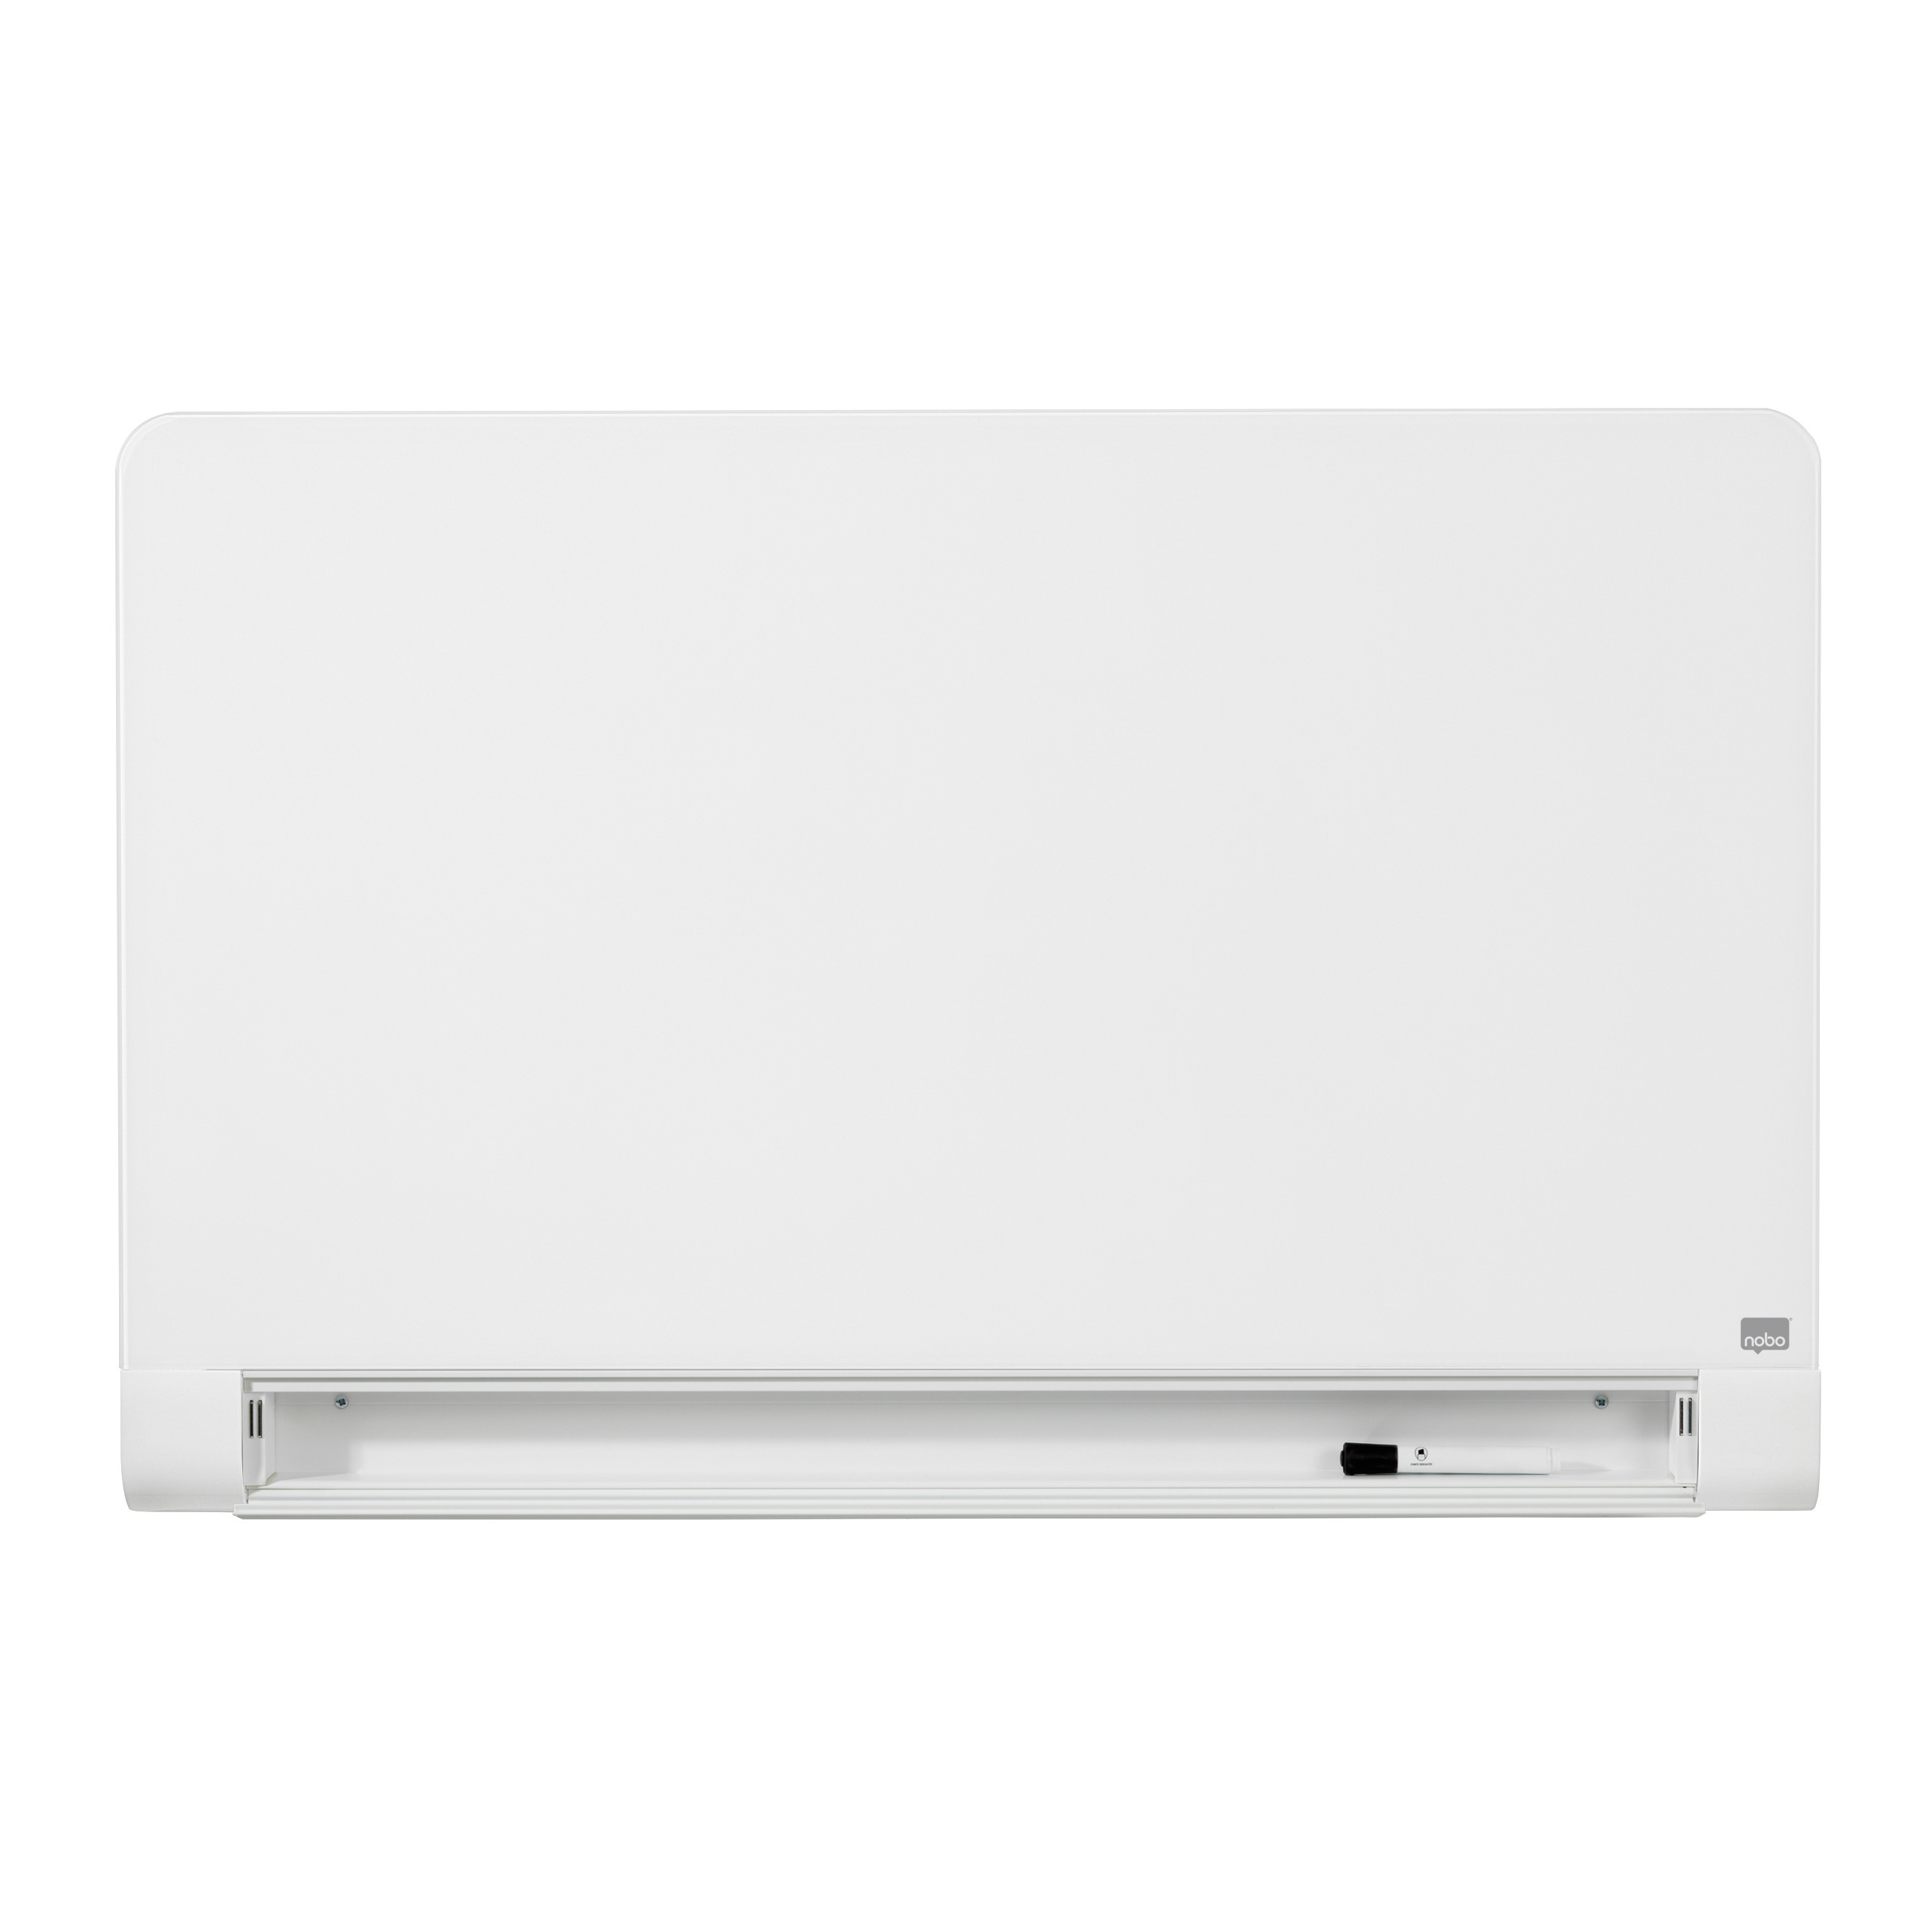 Magnetic Nobo Widescreen 45 inch WBrd Gls Rnd Cnr Magn Scratch-Res Fixings Inc W1000xH560mm Brill Wht Ref 1905191